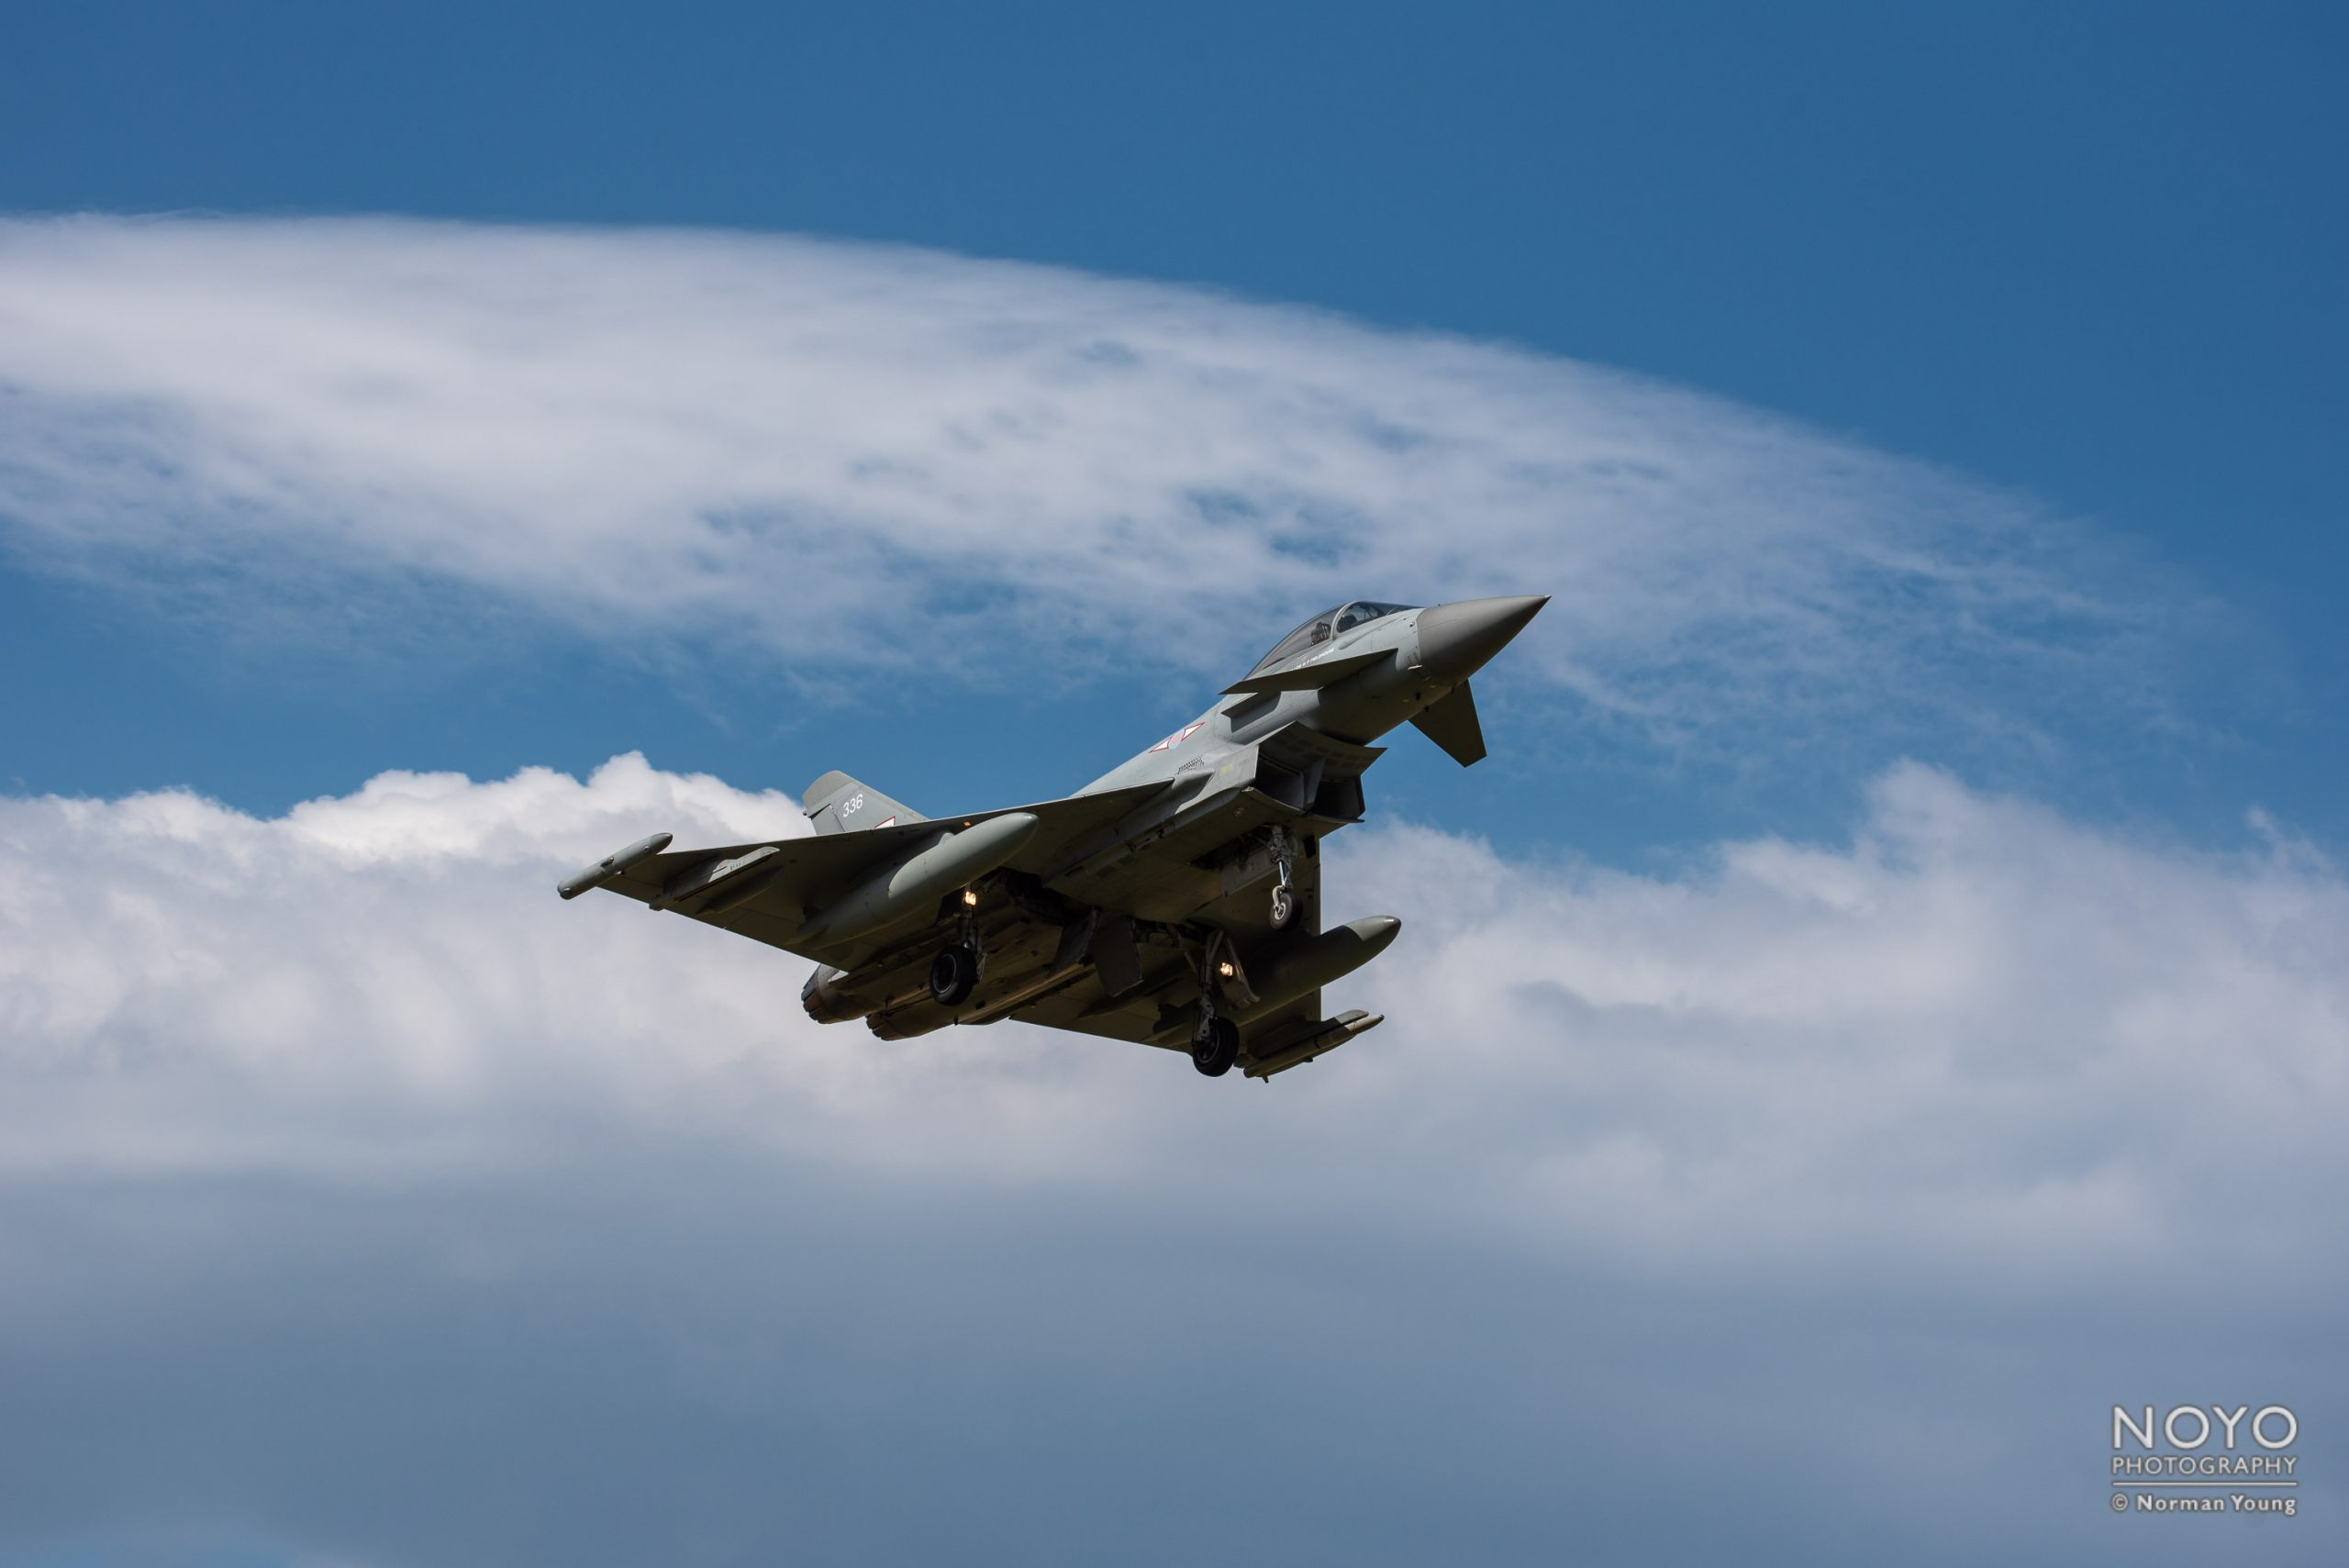 Photo of RAF Typhoon aircraft in flight by Norman Young